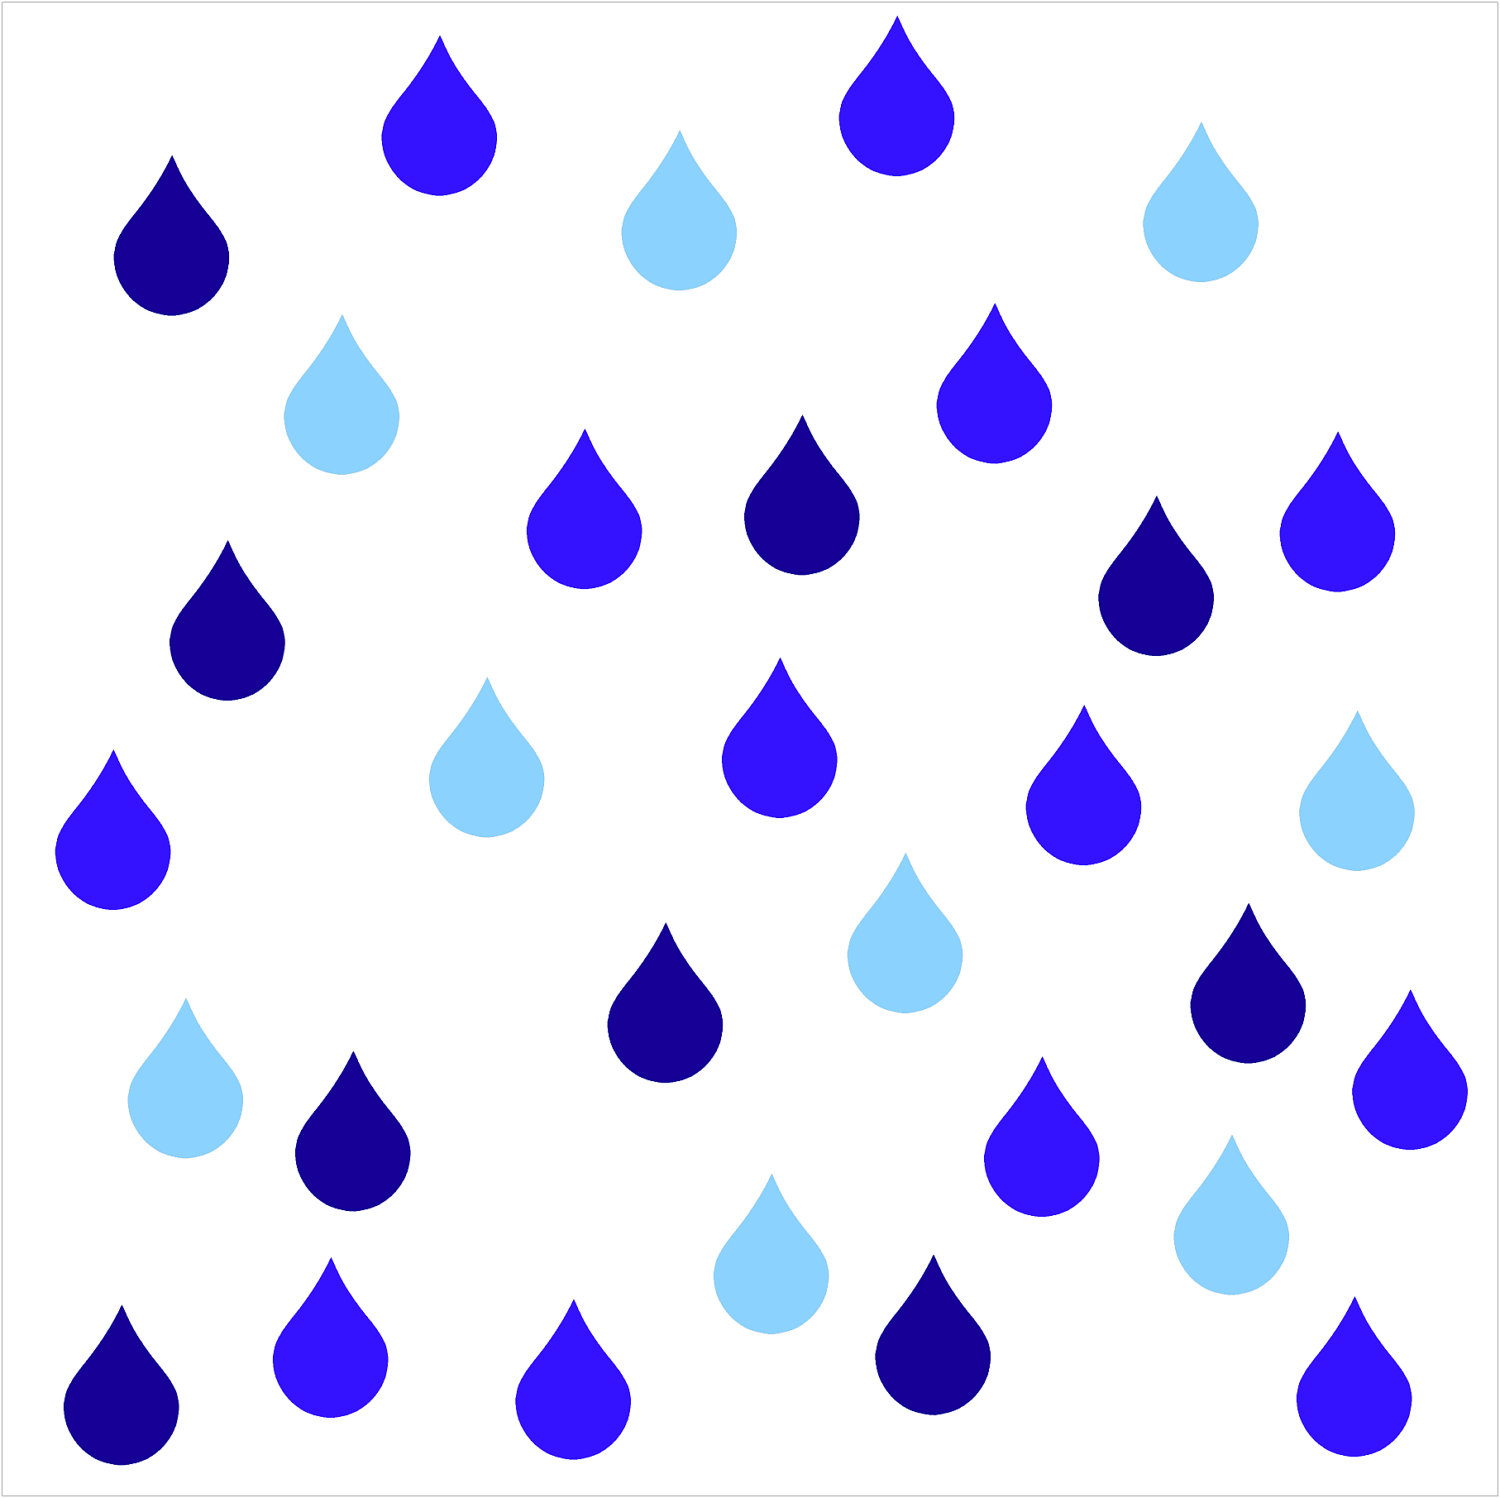 Raindrops pictures clipart vector freeuse stock Raindrops - Free Clipart vector freeuse stock